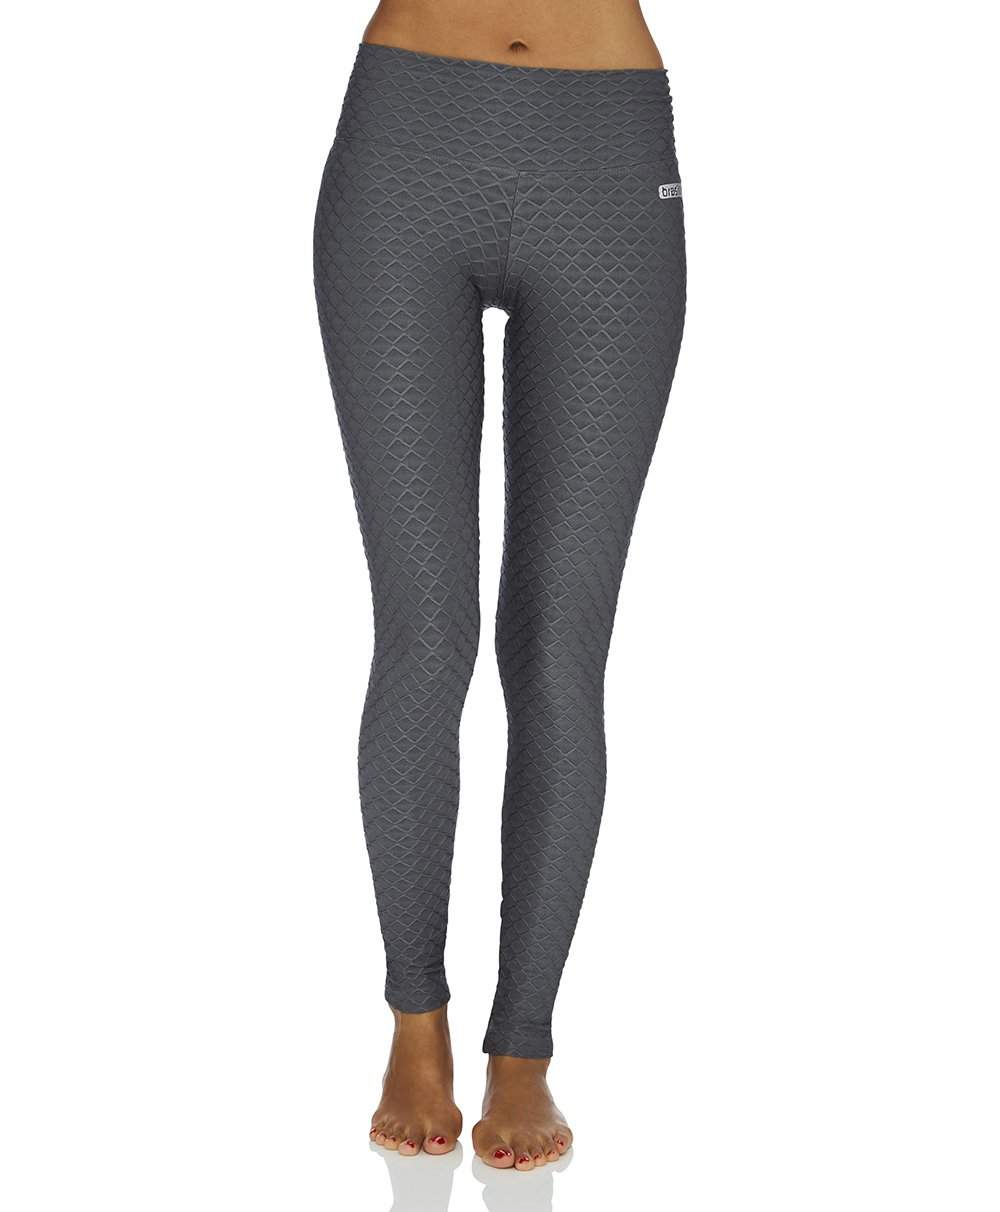 Wallpaper Full Length Legging - Grey